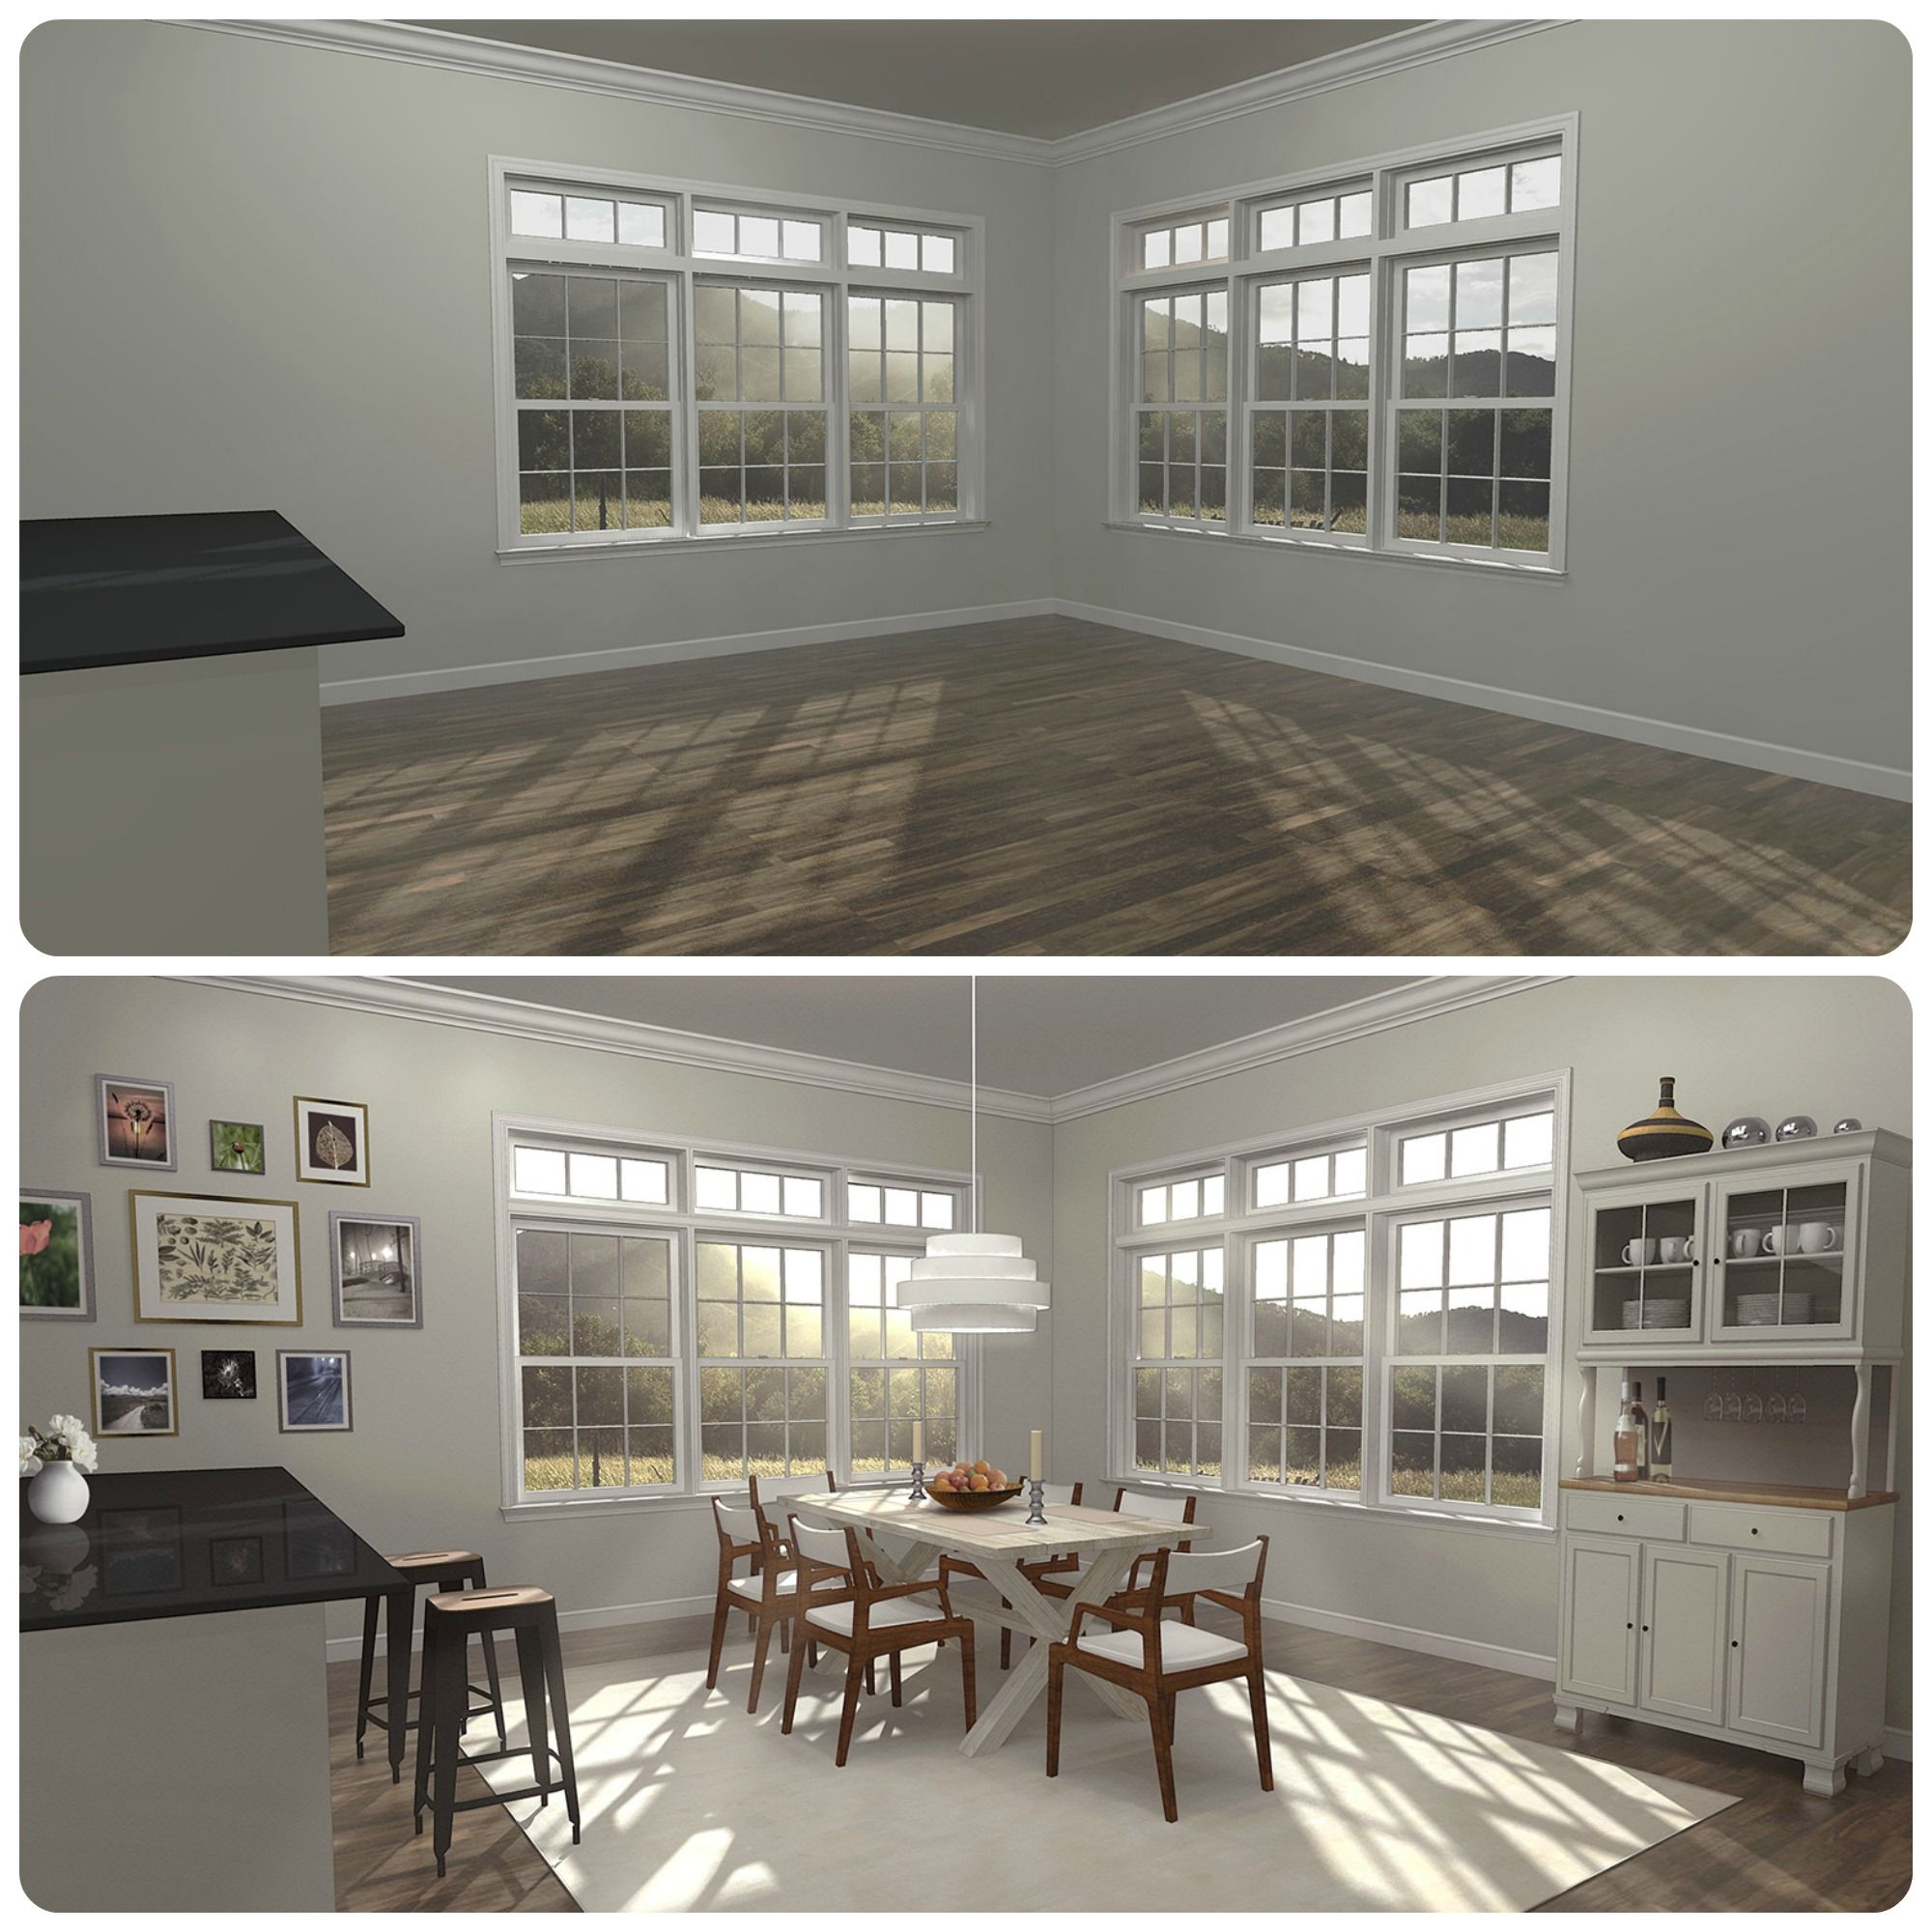 Home Staging Dining Room Table: Virtual Staging Transformation Of A Dining Room. Virtual